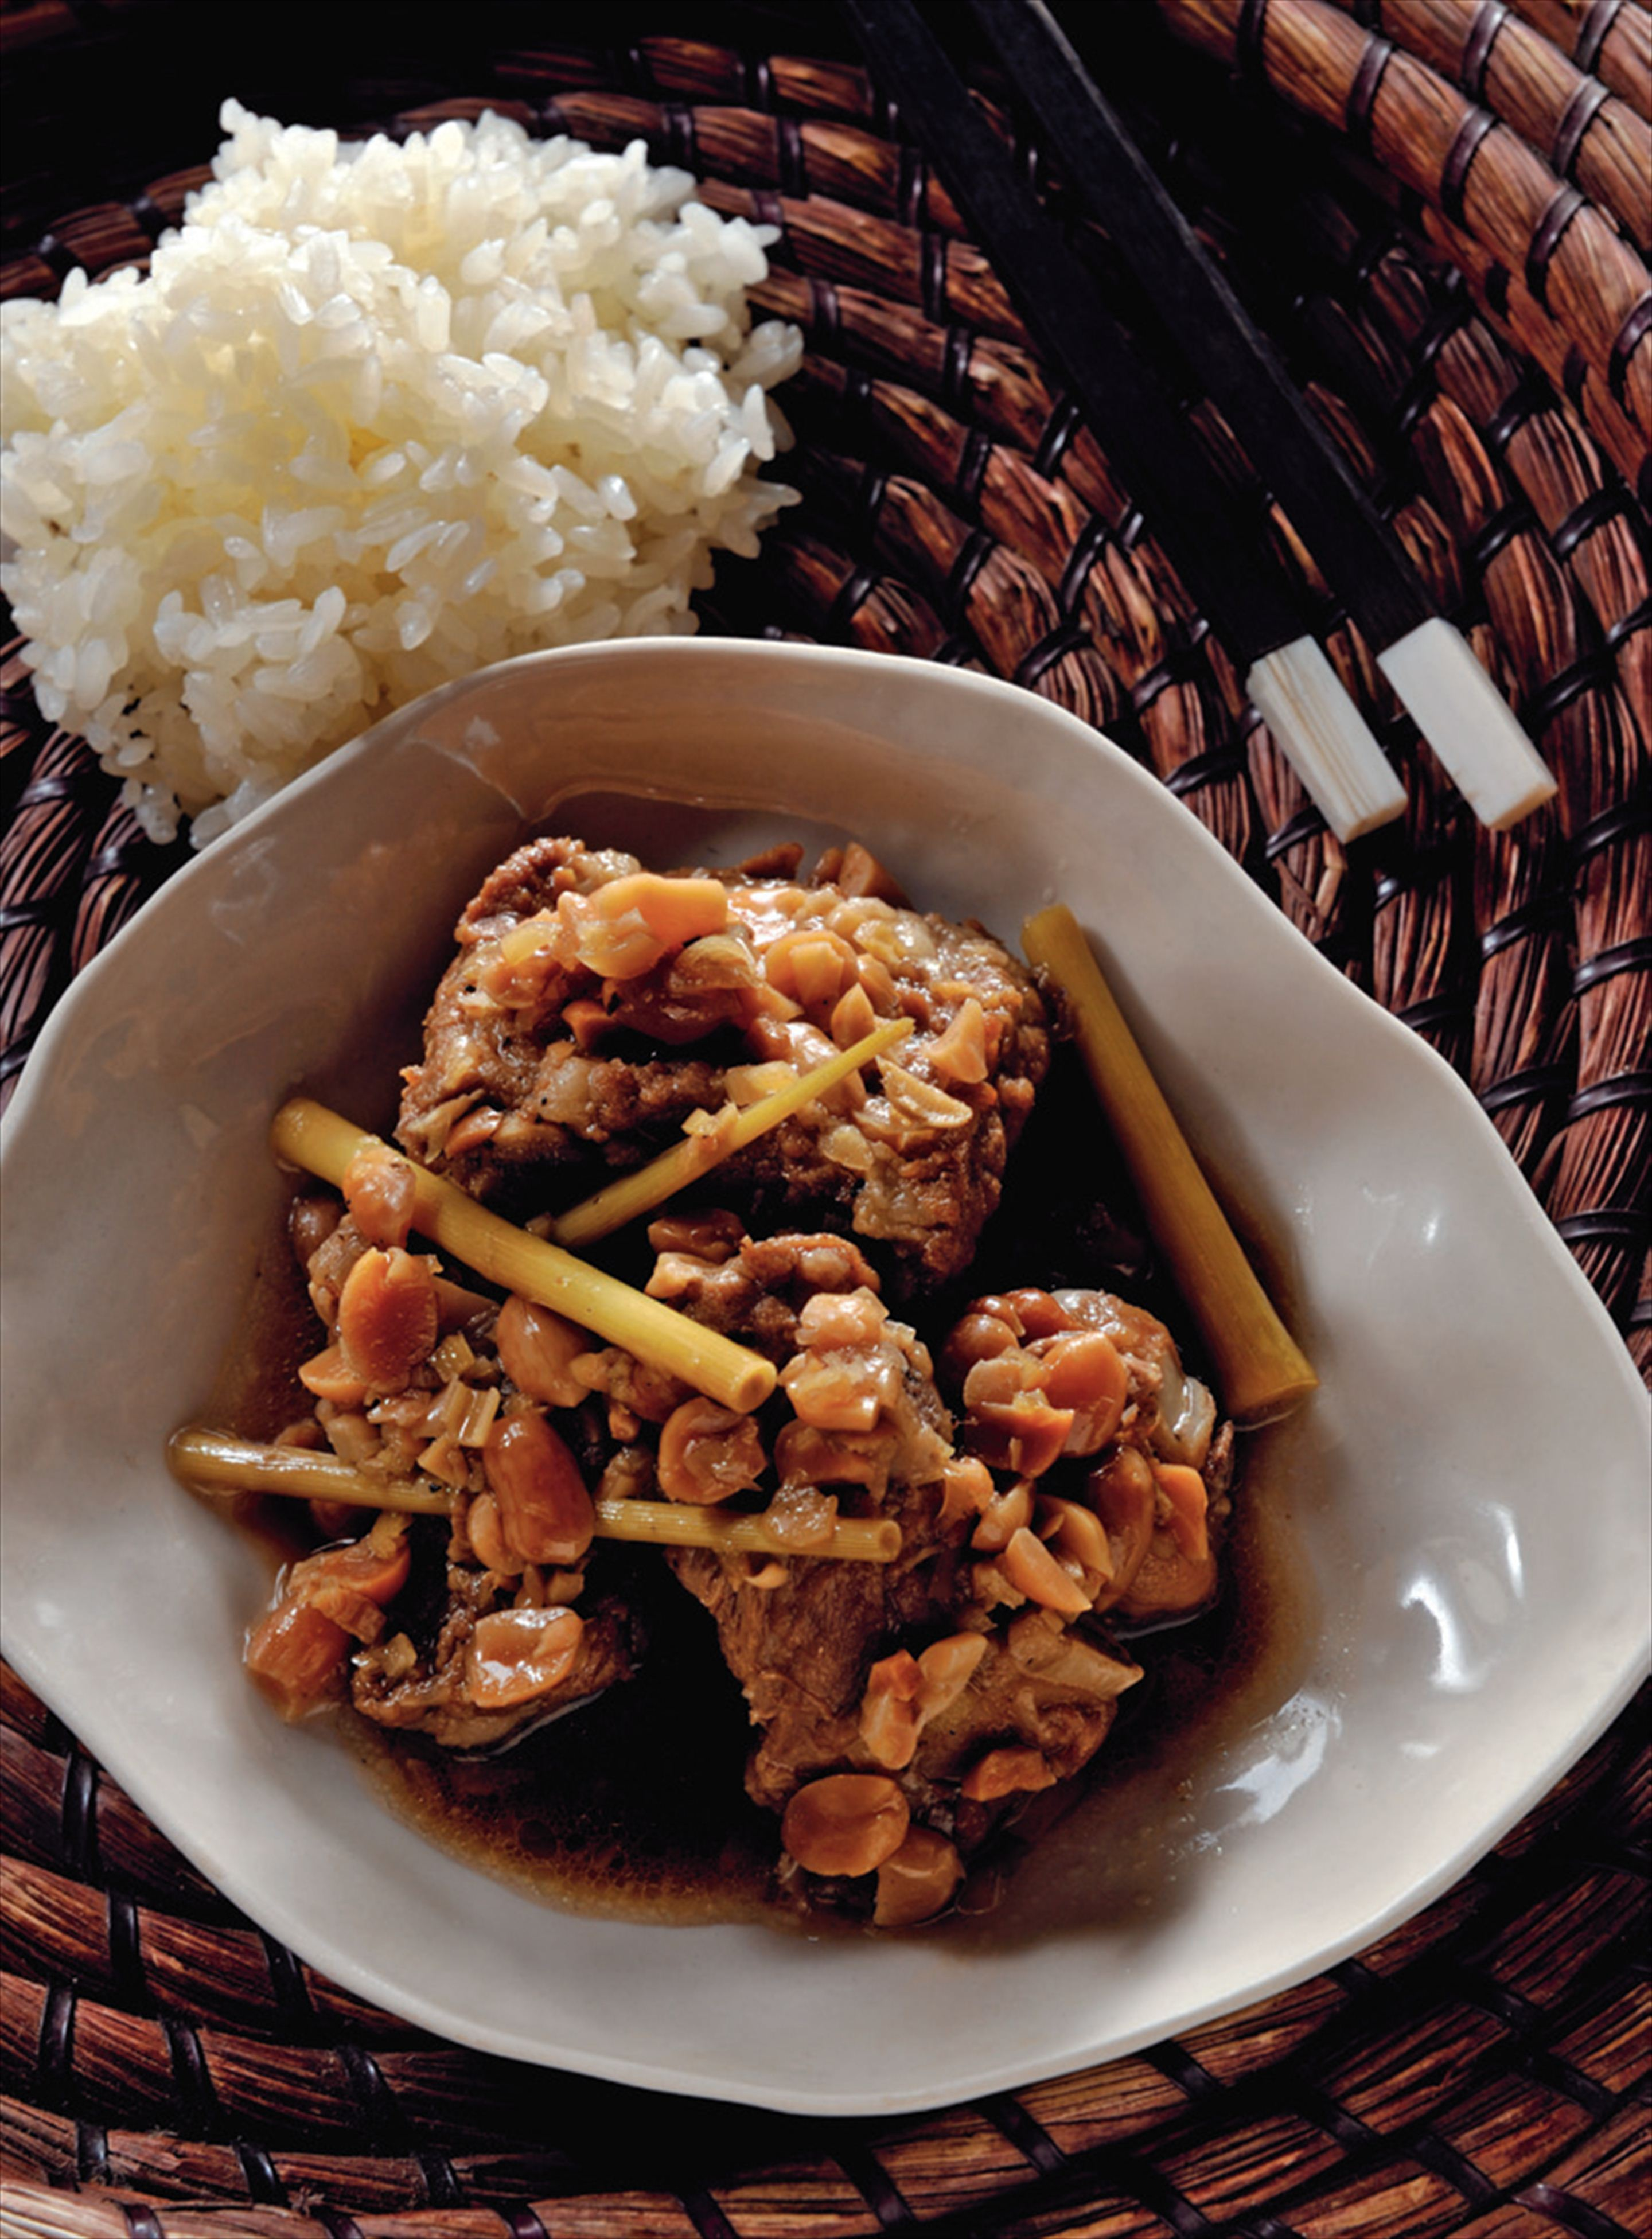 Pork ribs braised with peanuts and lemongrass